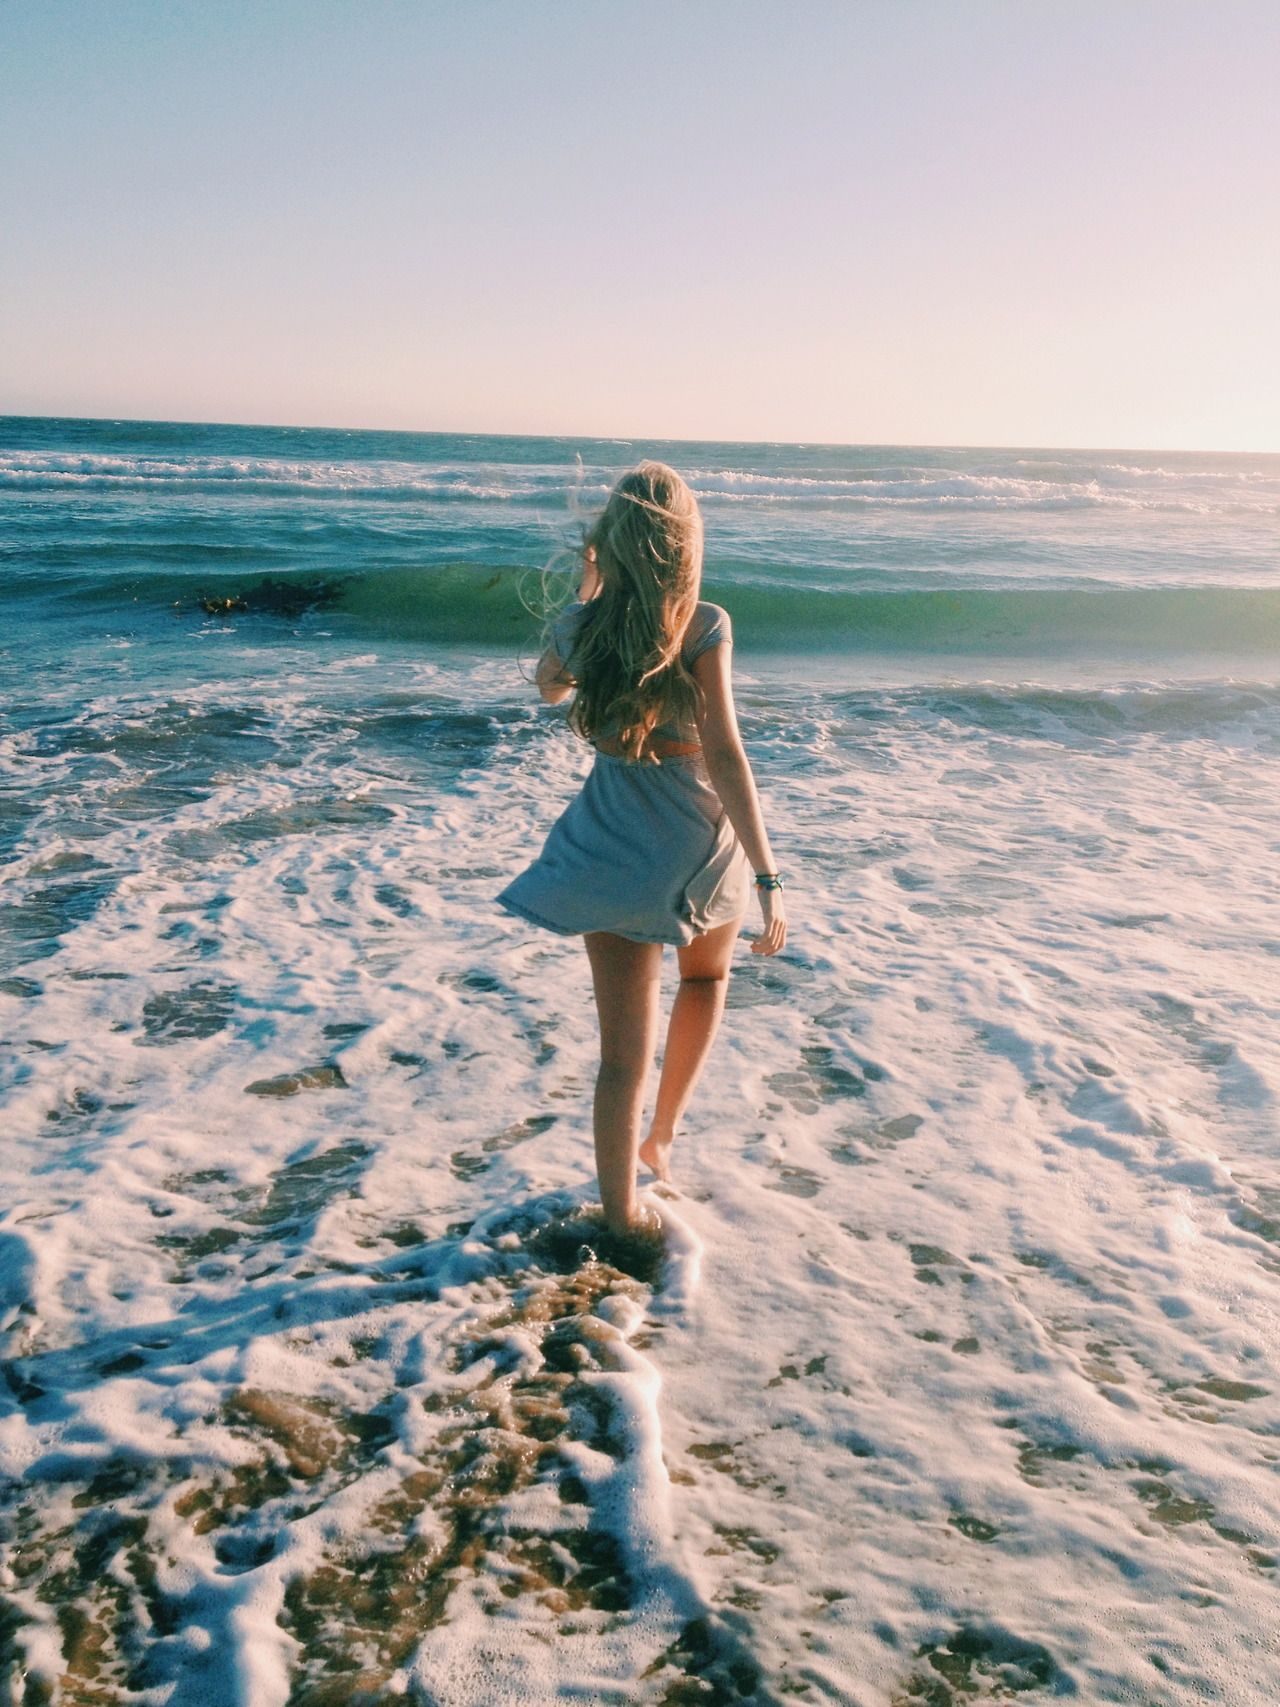 All Things Girly Beautiful Photo Summer Vibes Beach Beach Summer Beach Girly beach vibes girly cute vintage